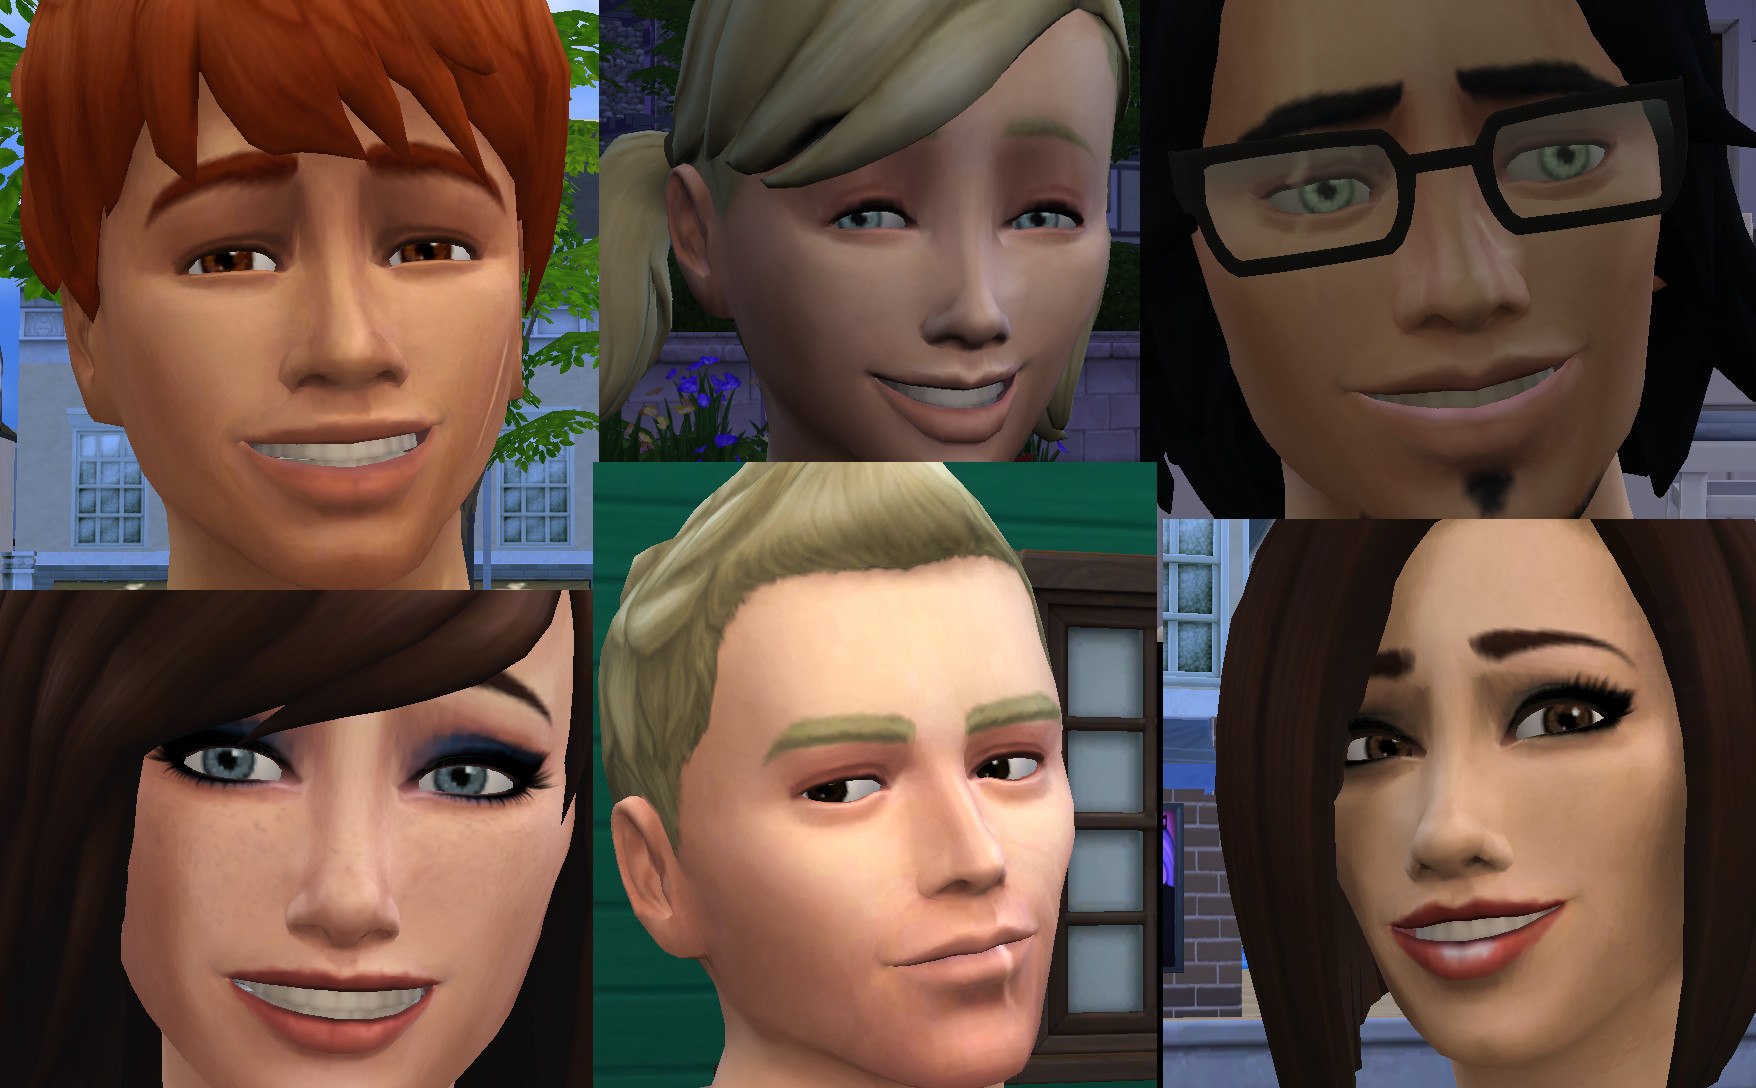 The sims 4 mods disabled dating